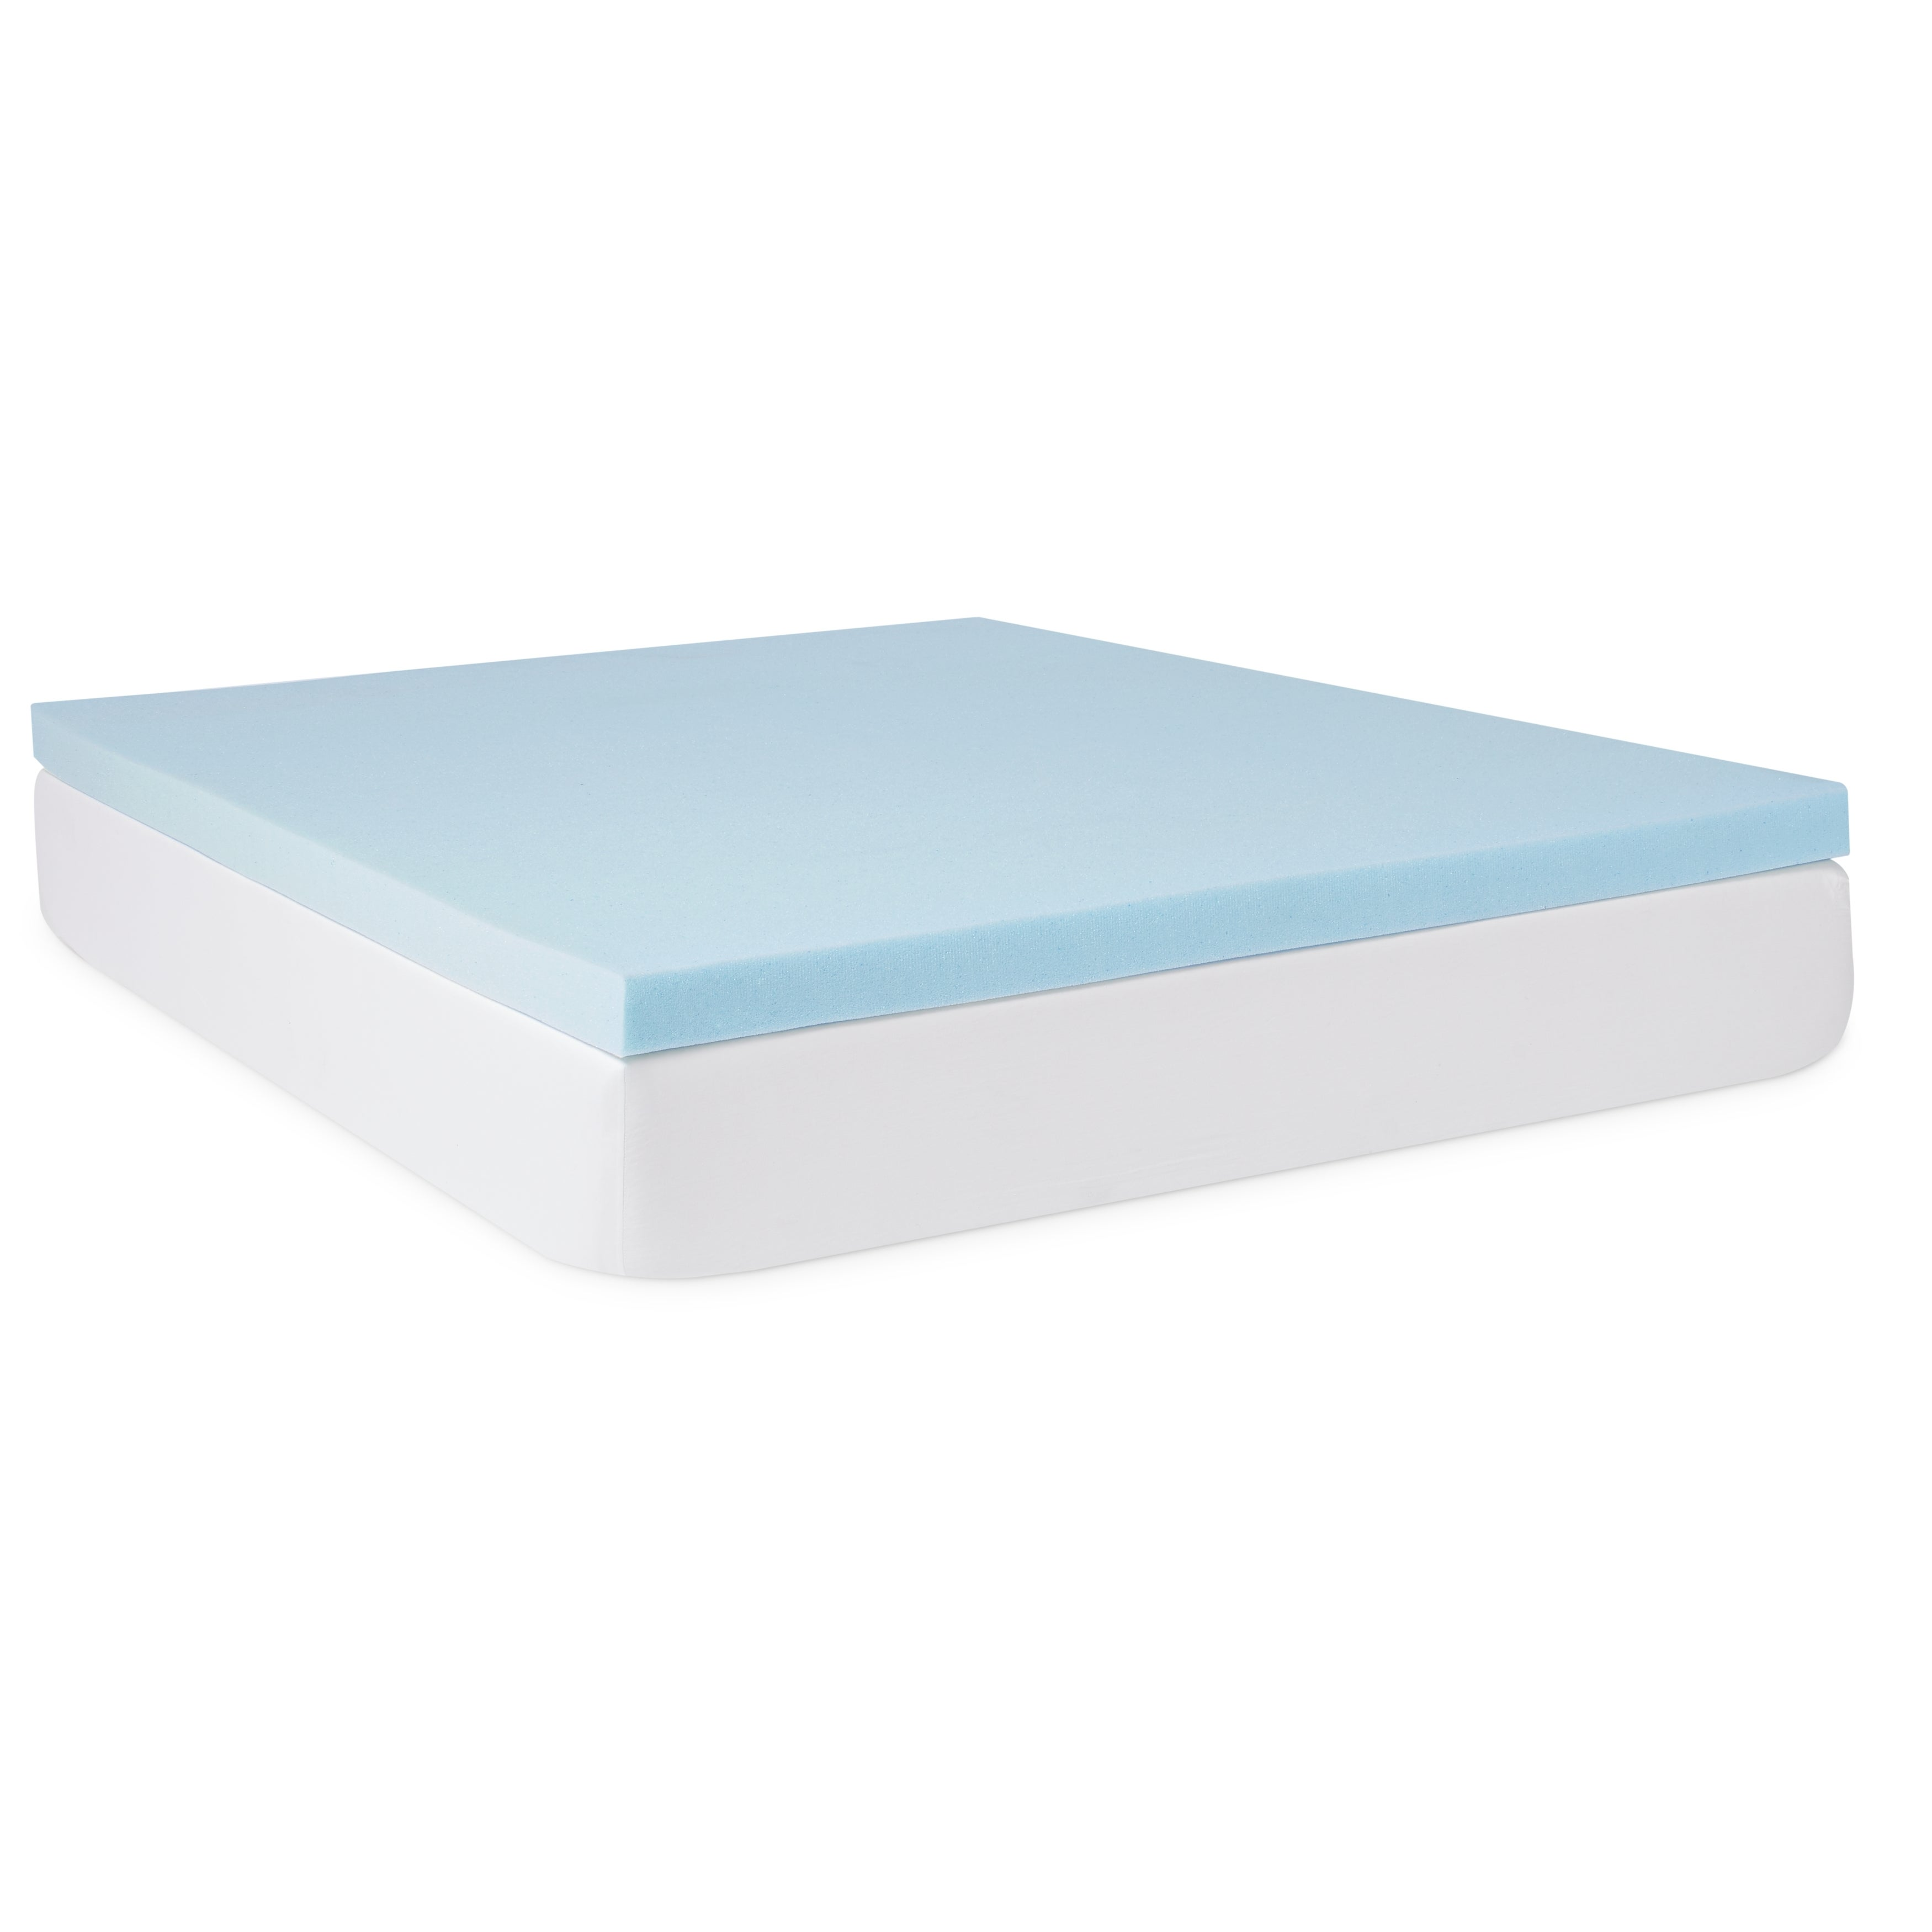 Shop Lucid 3 Inch Gel Memory Foam Mattress Topper With Premium